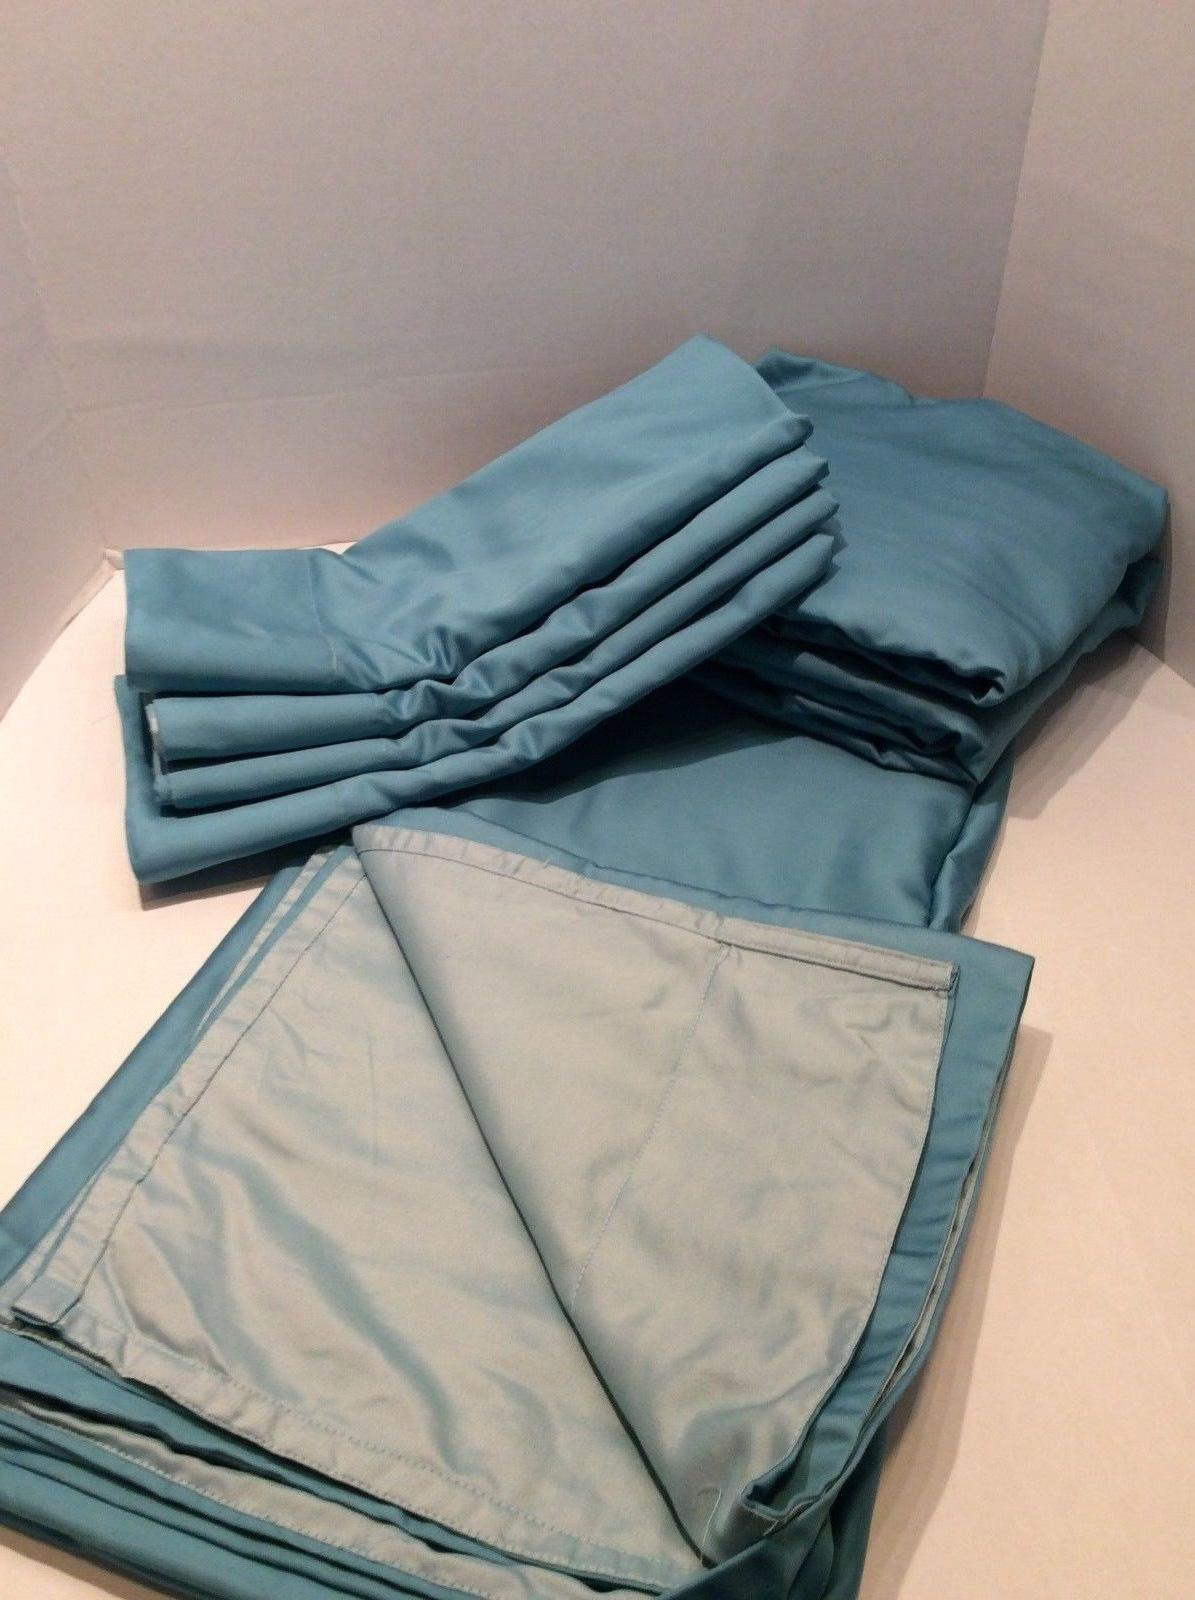 queen sheets qvc sheets 600tc easy care